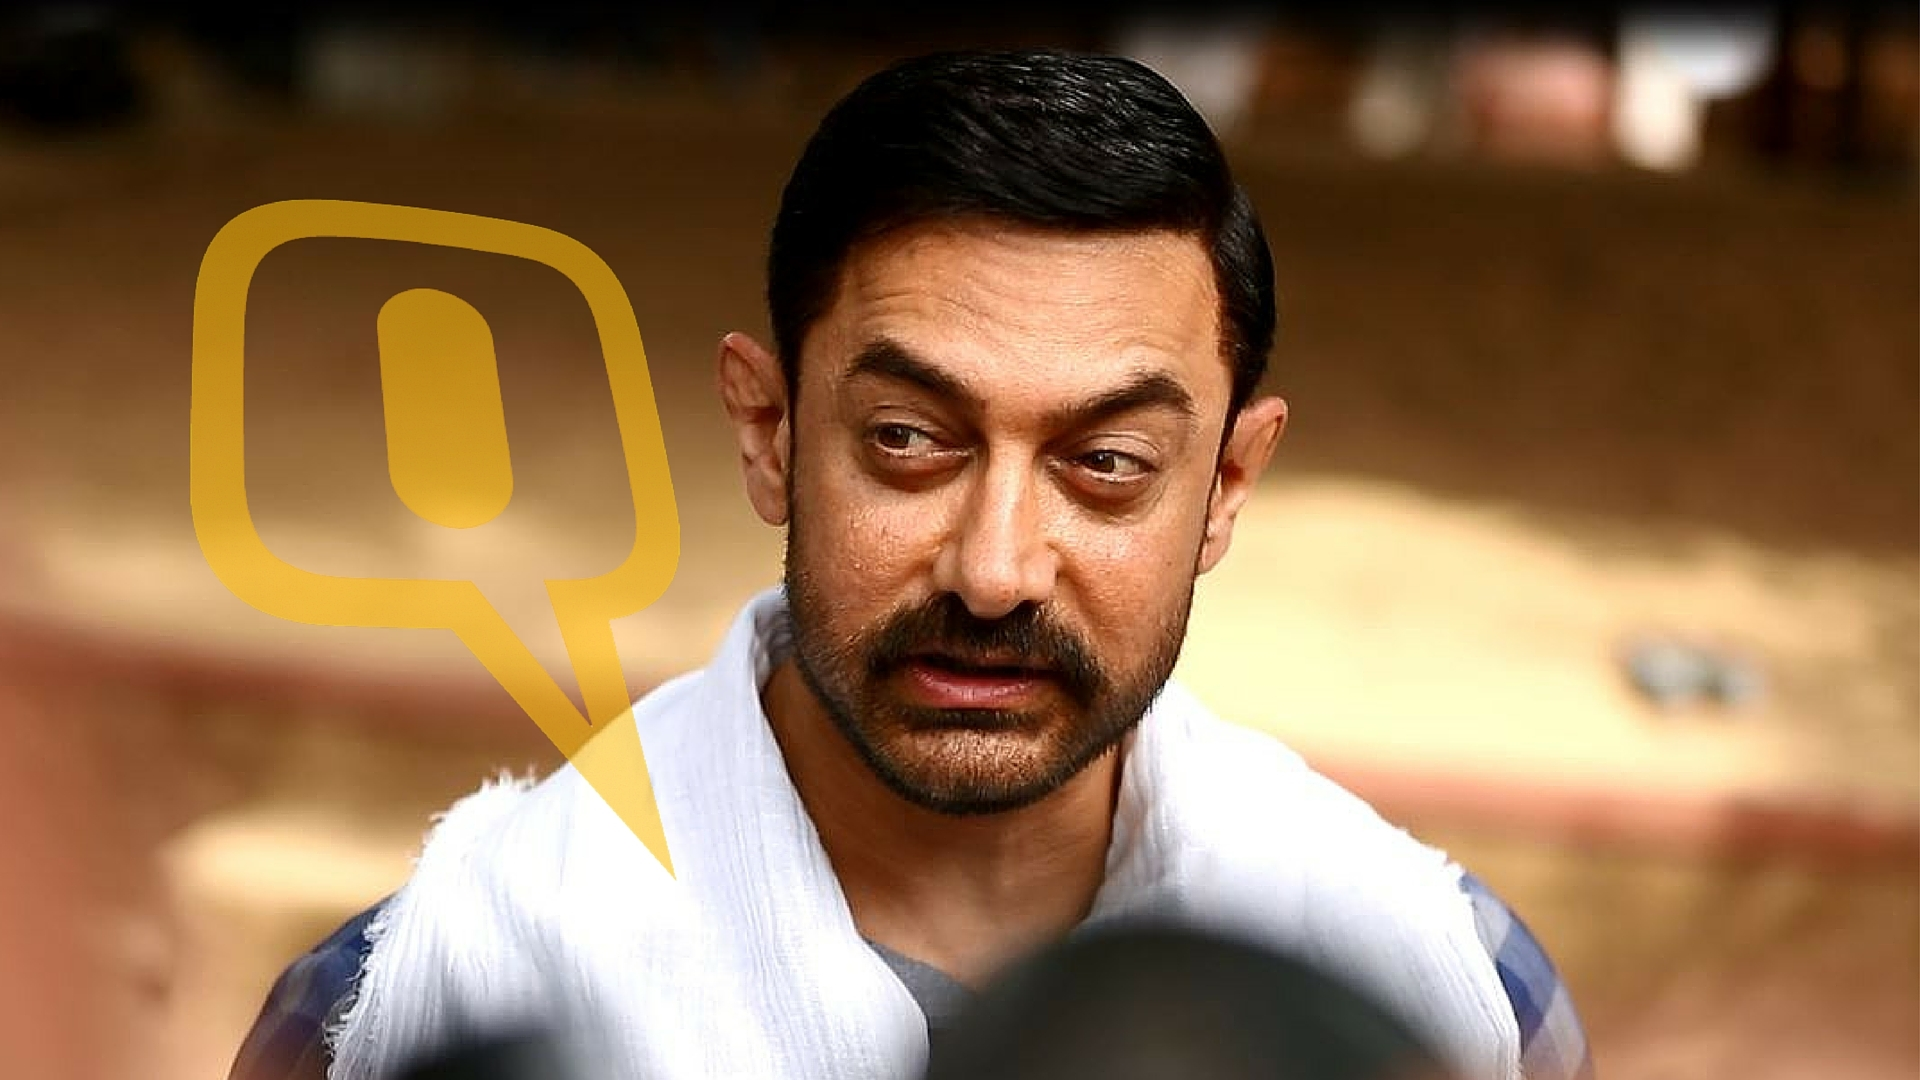 Exclusive Aamir Khans First Look From Dangal In 360 Degrees